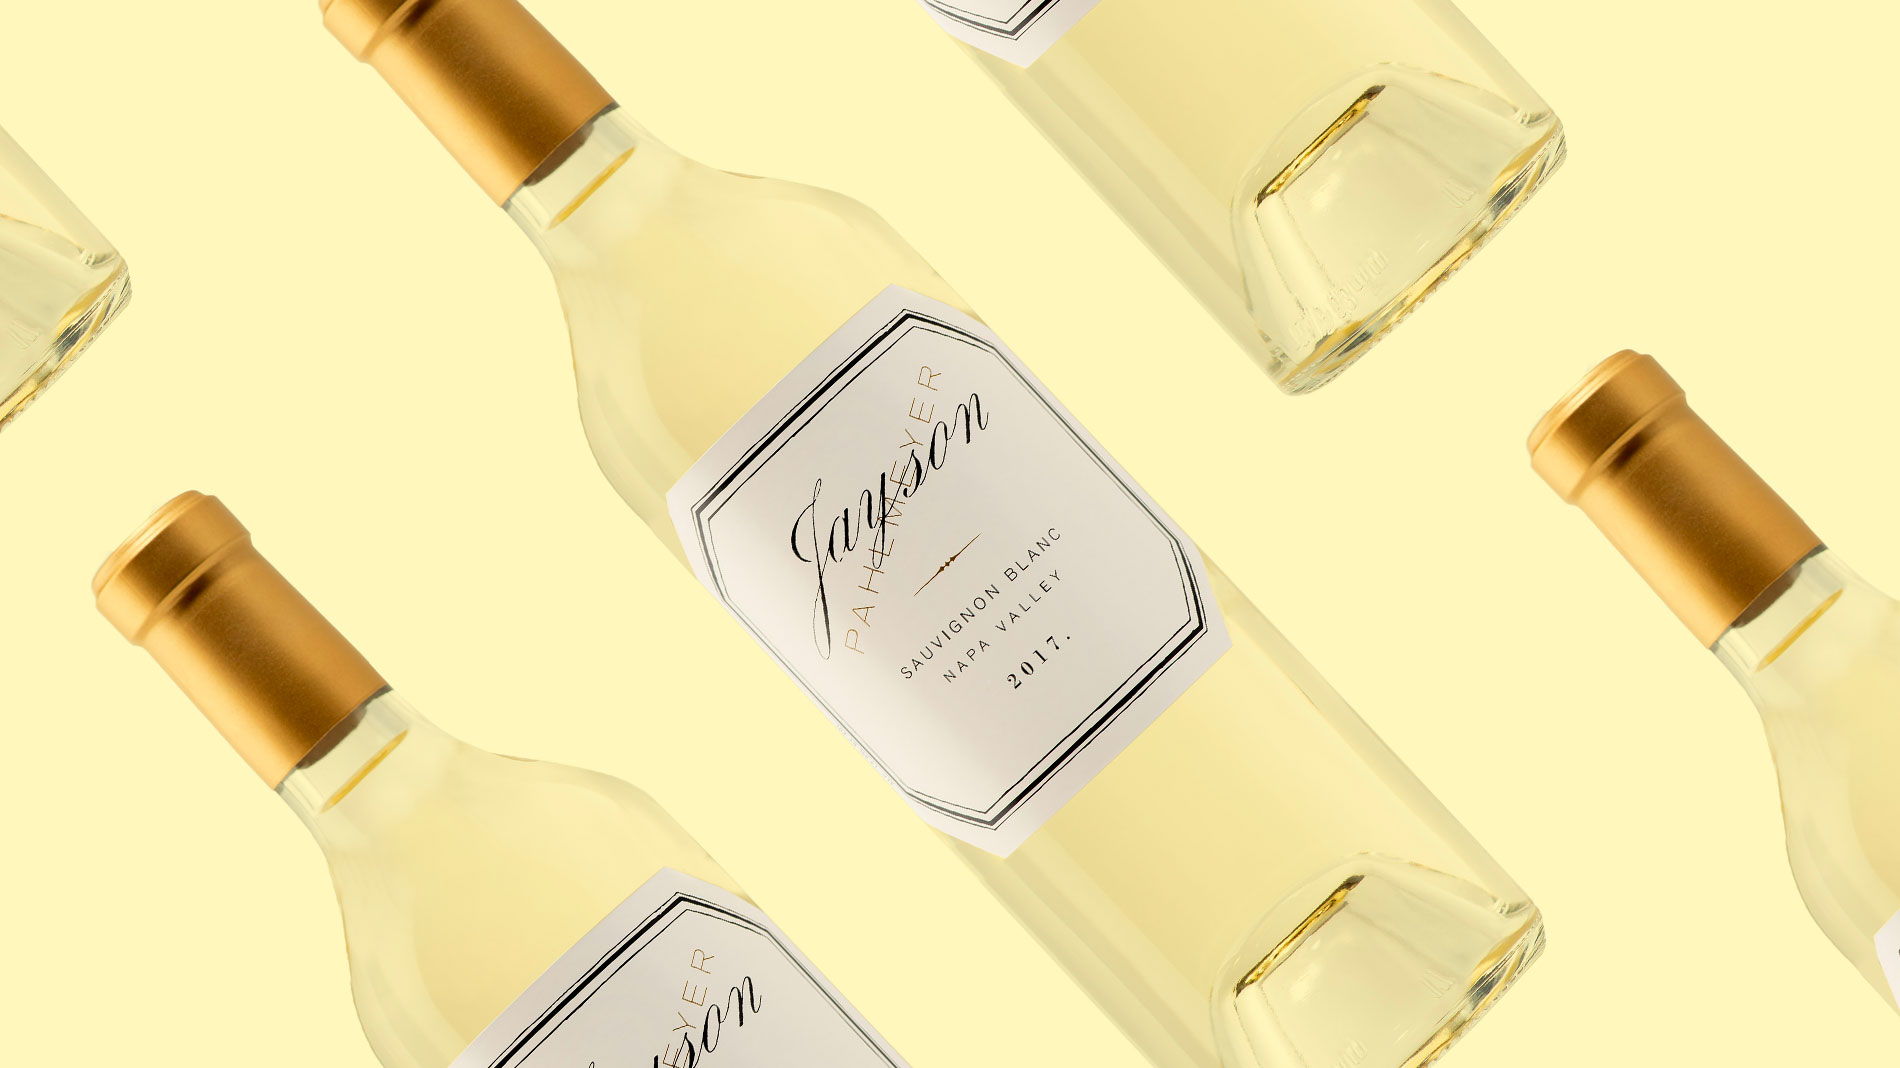 several bottles of white wine against a pale yellow backdrop